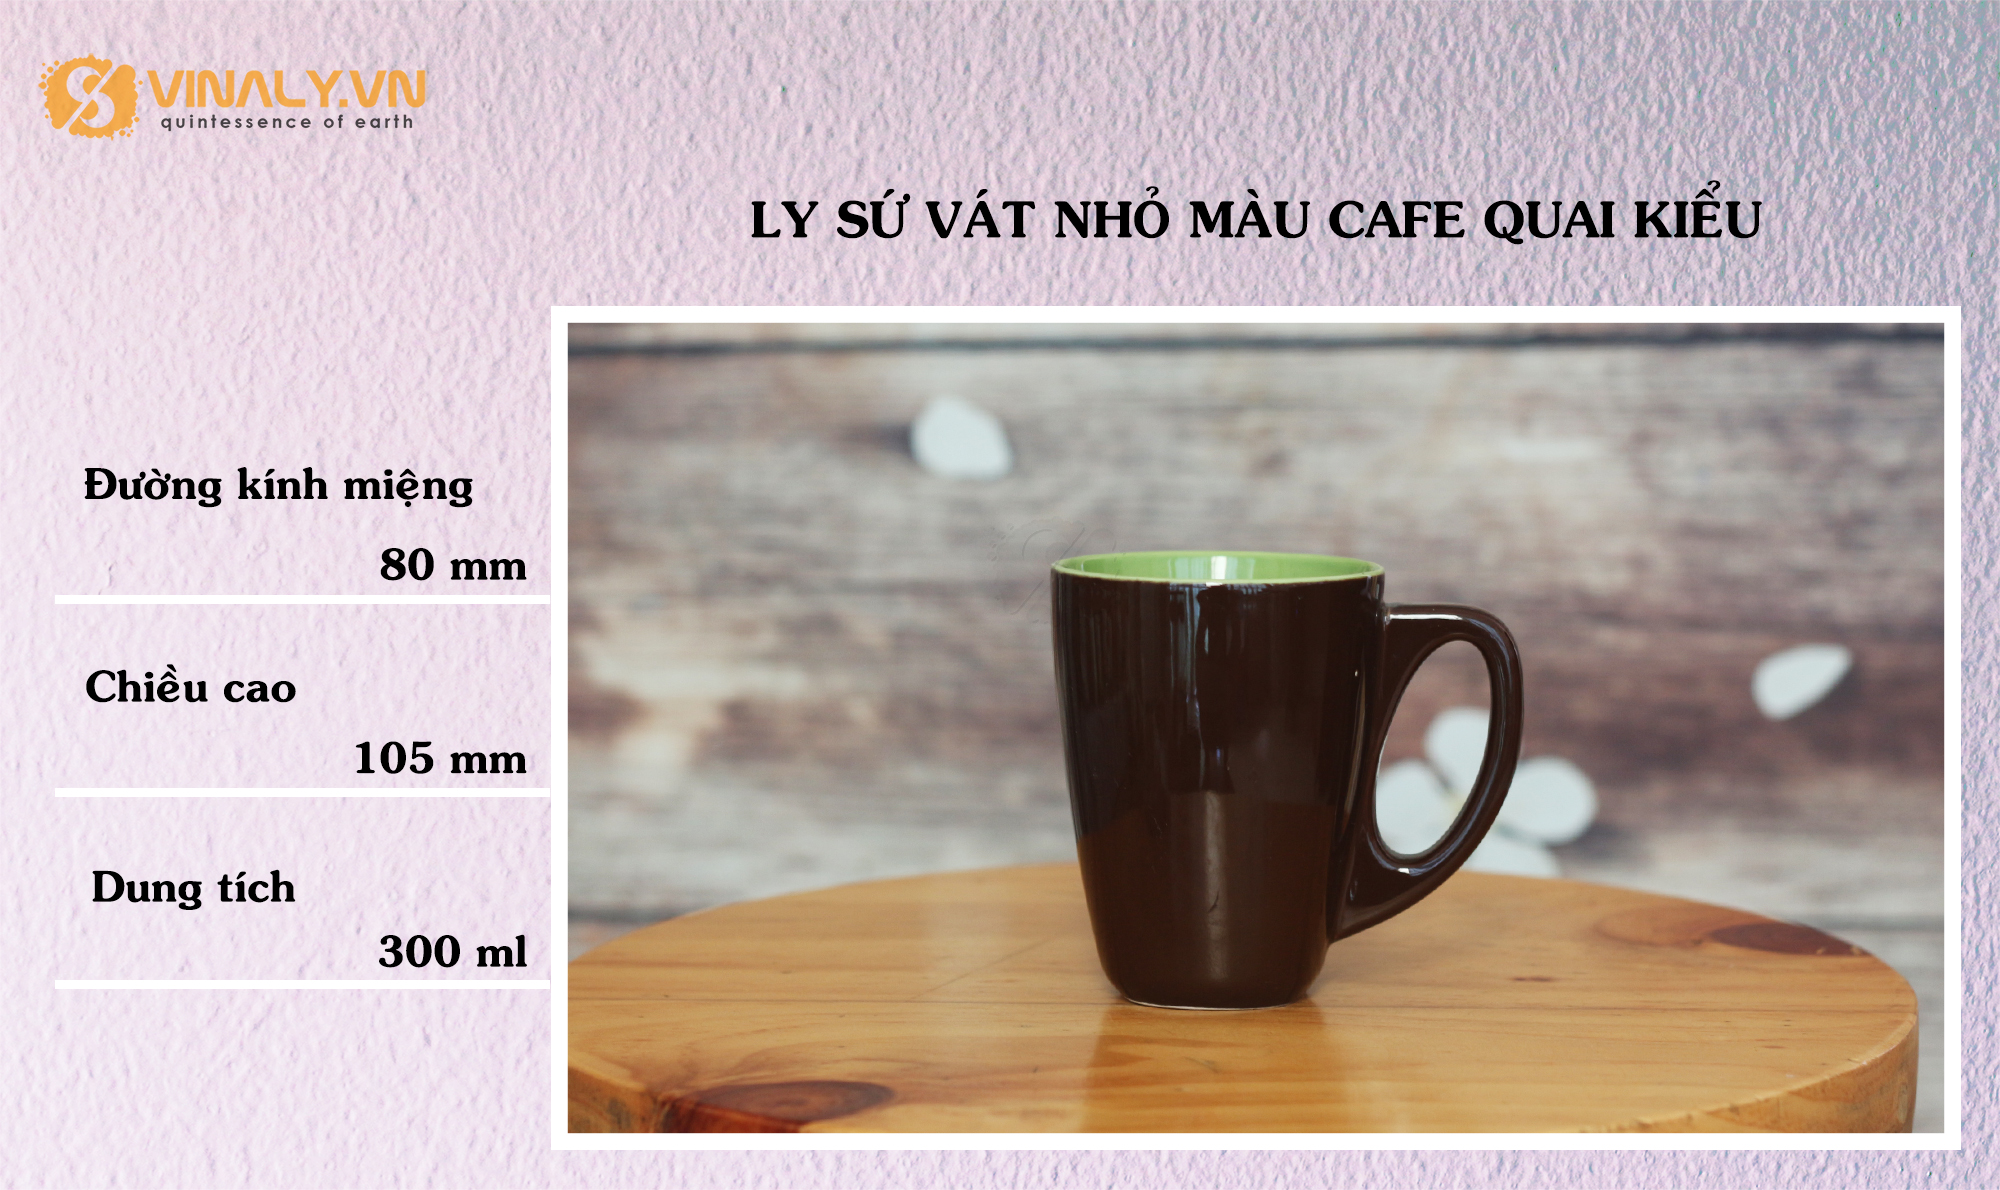 ly-su-vinaly-ly-su-mau-sac-ly-su-in-logo-ly-su-vat-nho-mau-cafe-quai-kieu